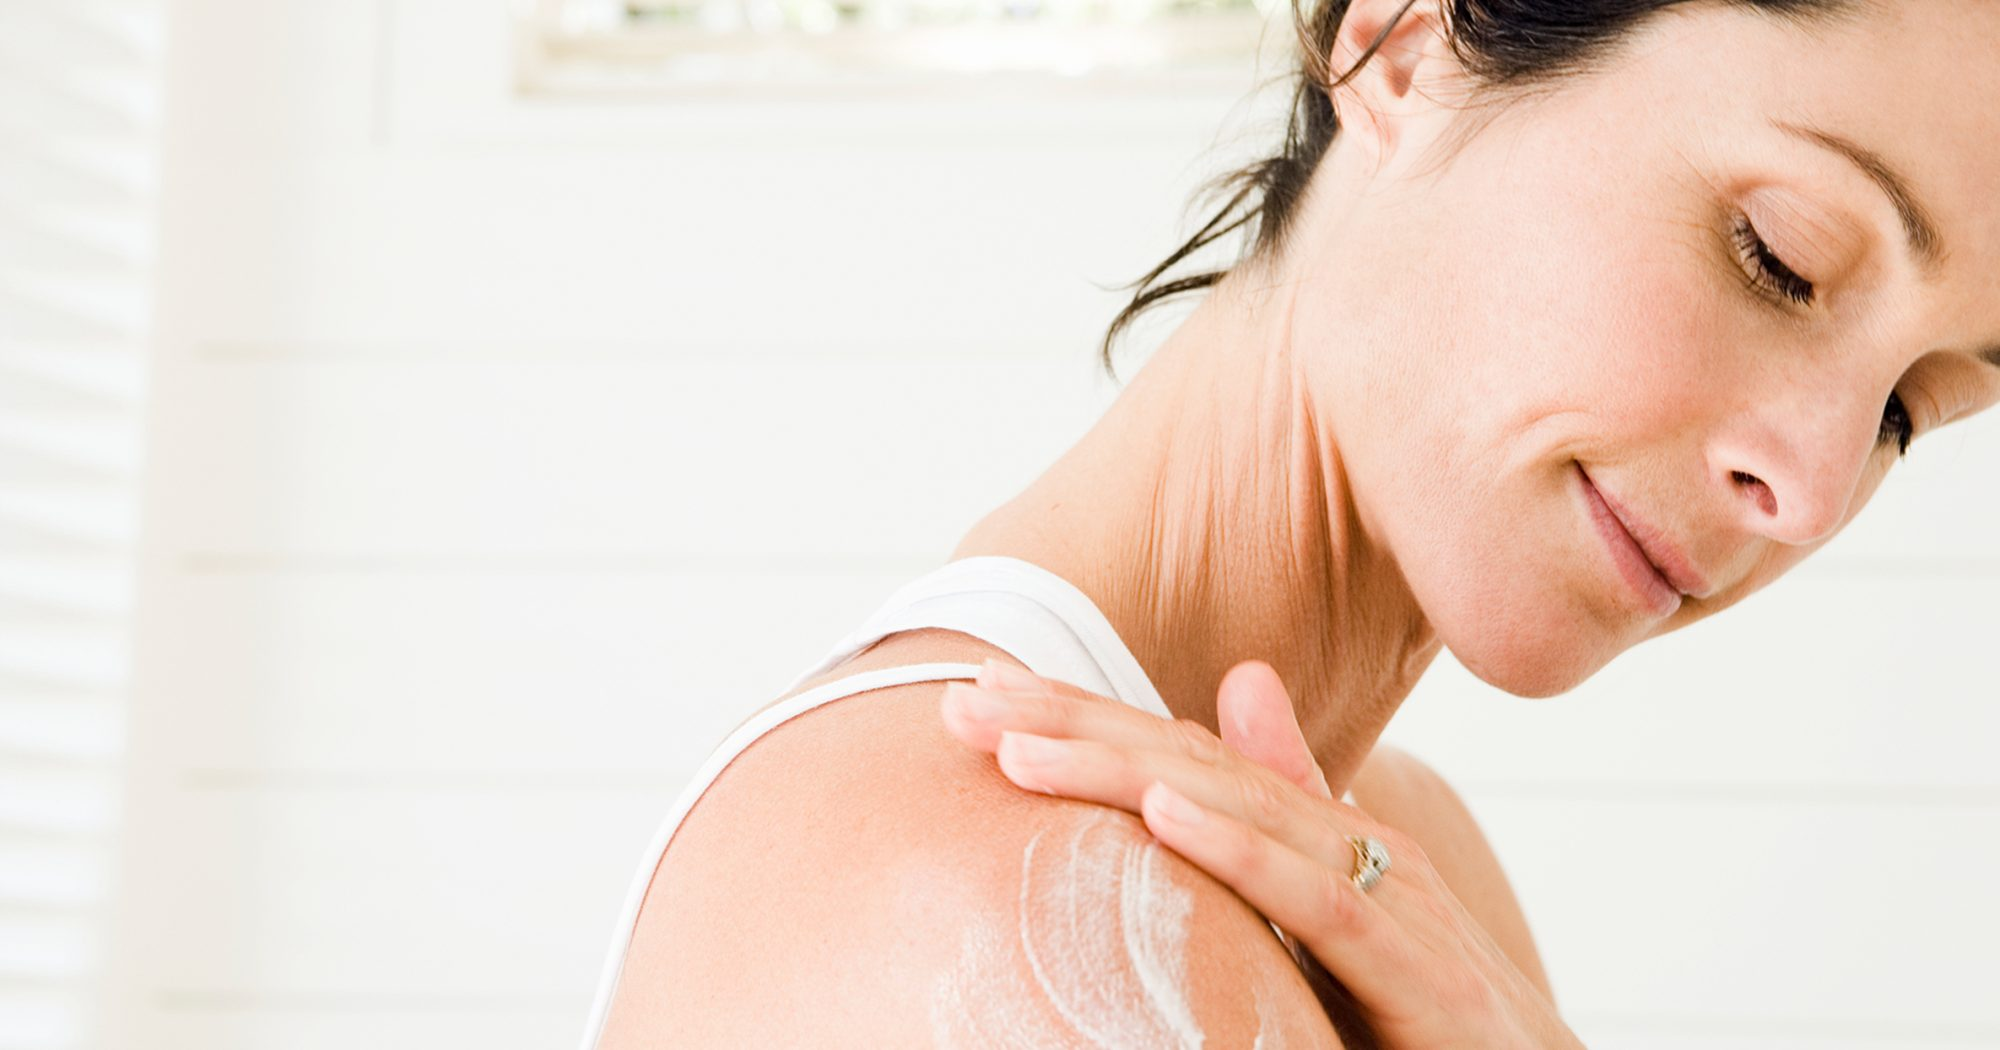 Woman Applying Lotion on Arm2370X1244